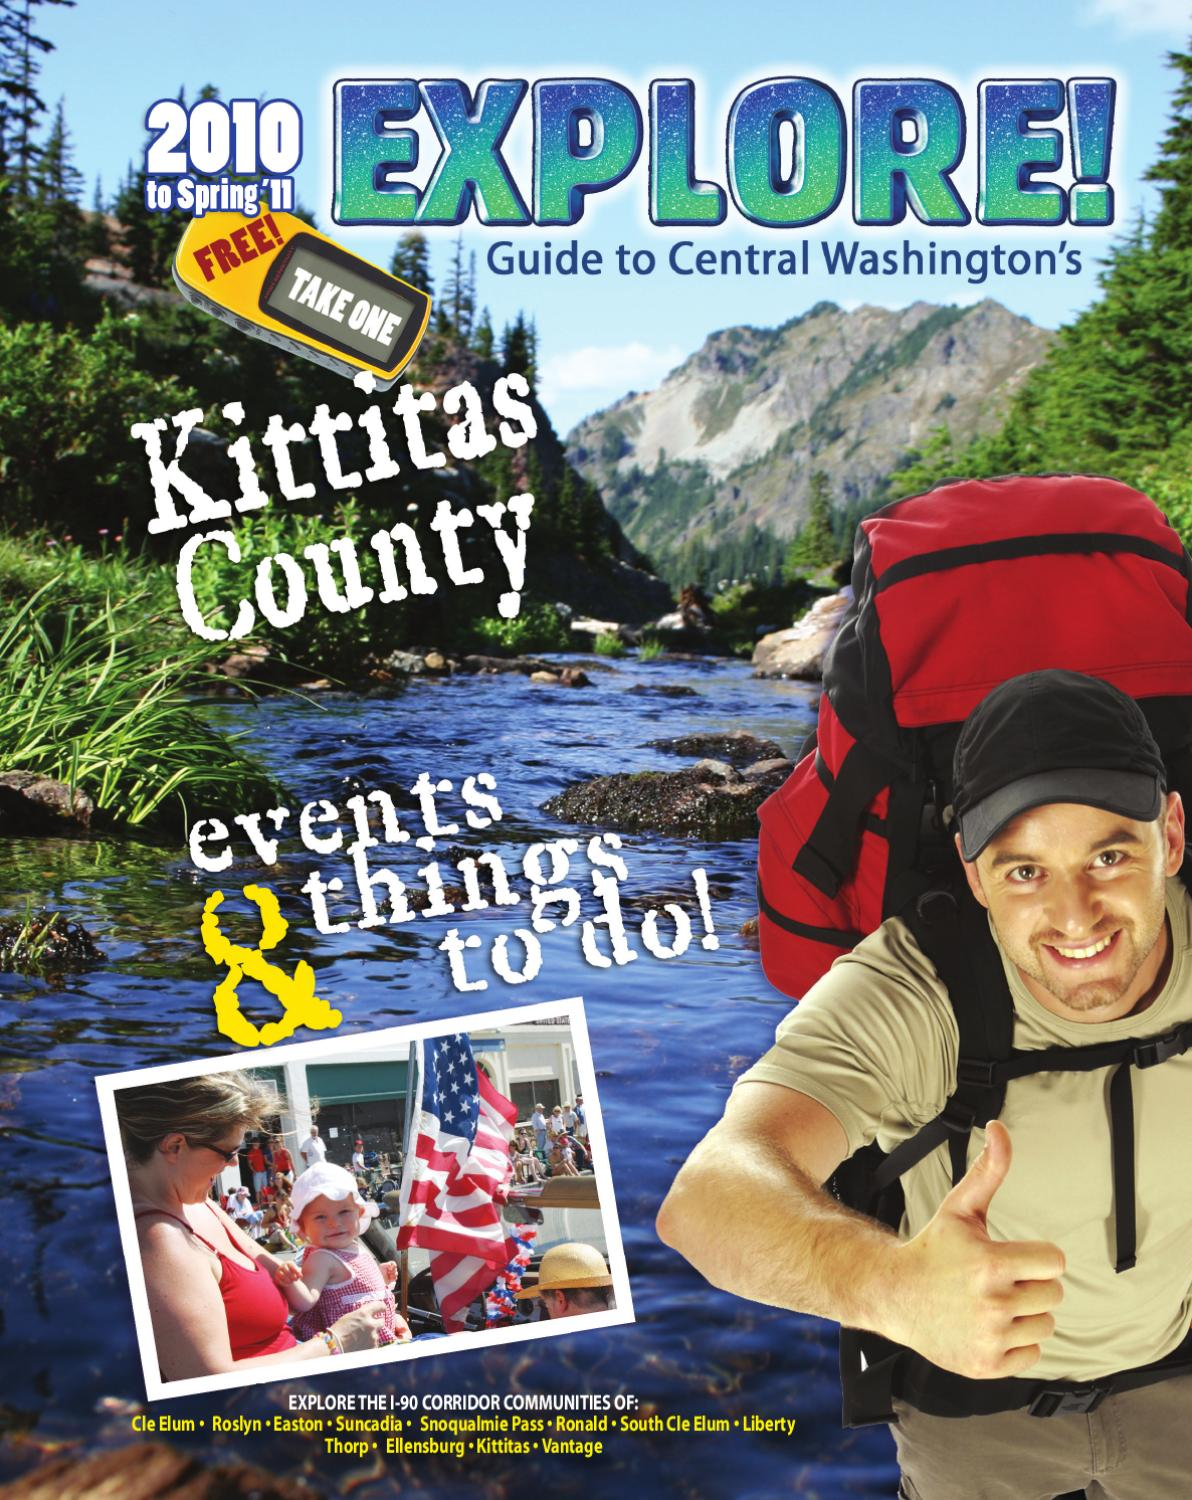 2010 11 EXPLORE! Kittitas County Visitor Guide by Northern Kittitas County Tr